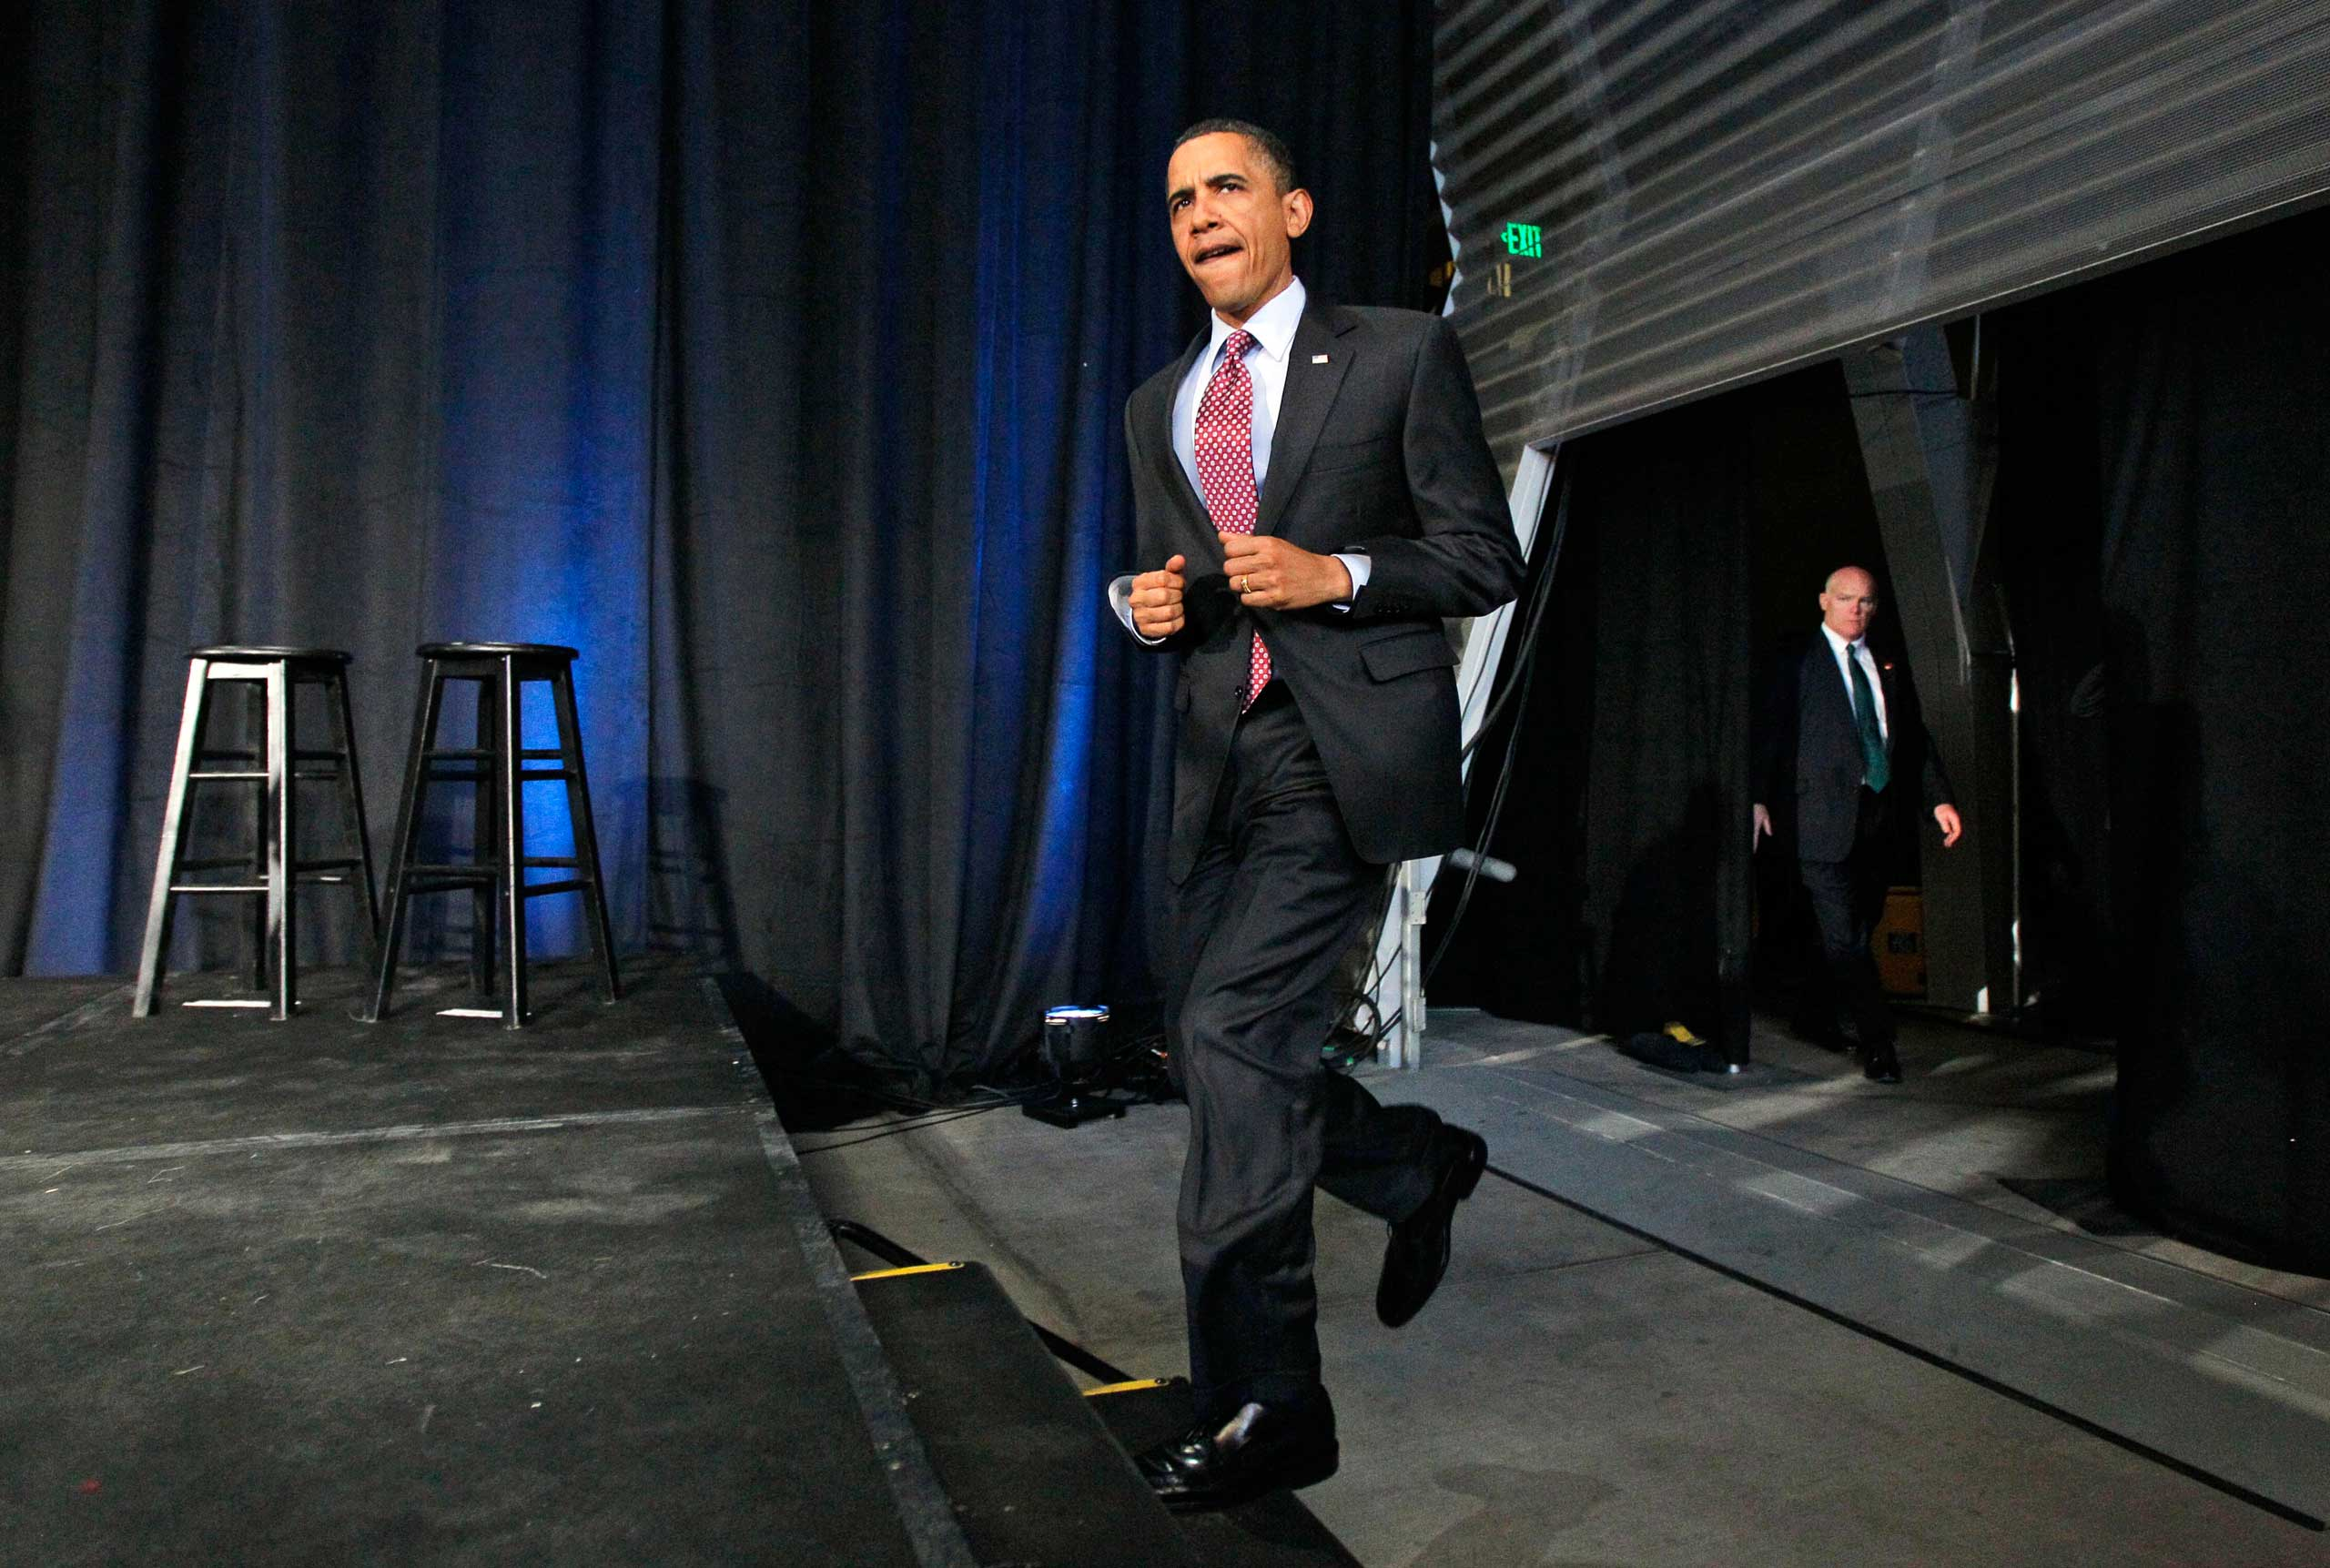 President Barack Obama jogs up the steps to speak at a fundraiser for the Democratic National Committee and Sen. Barbara Boxer, with Clancy watching closely from the wings, at the California Science Center in Los Angeles, April 19, 2010.